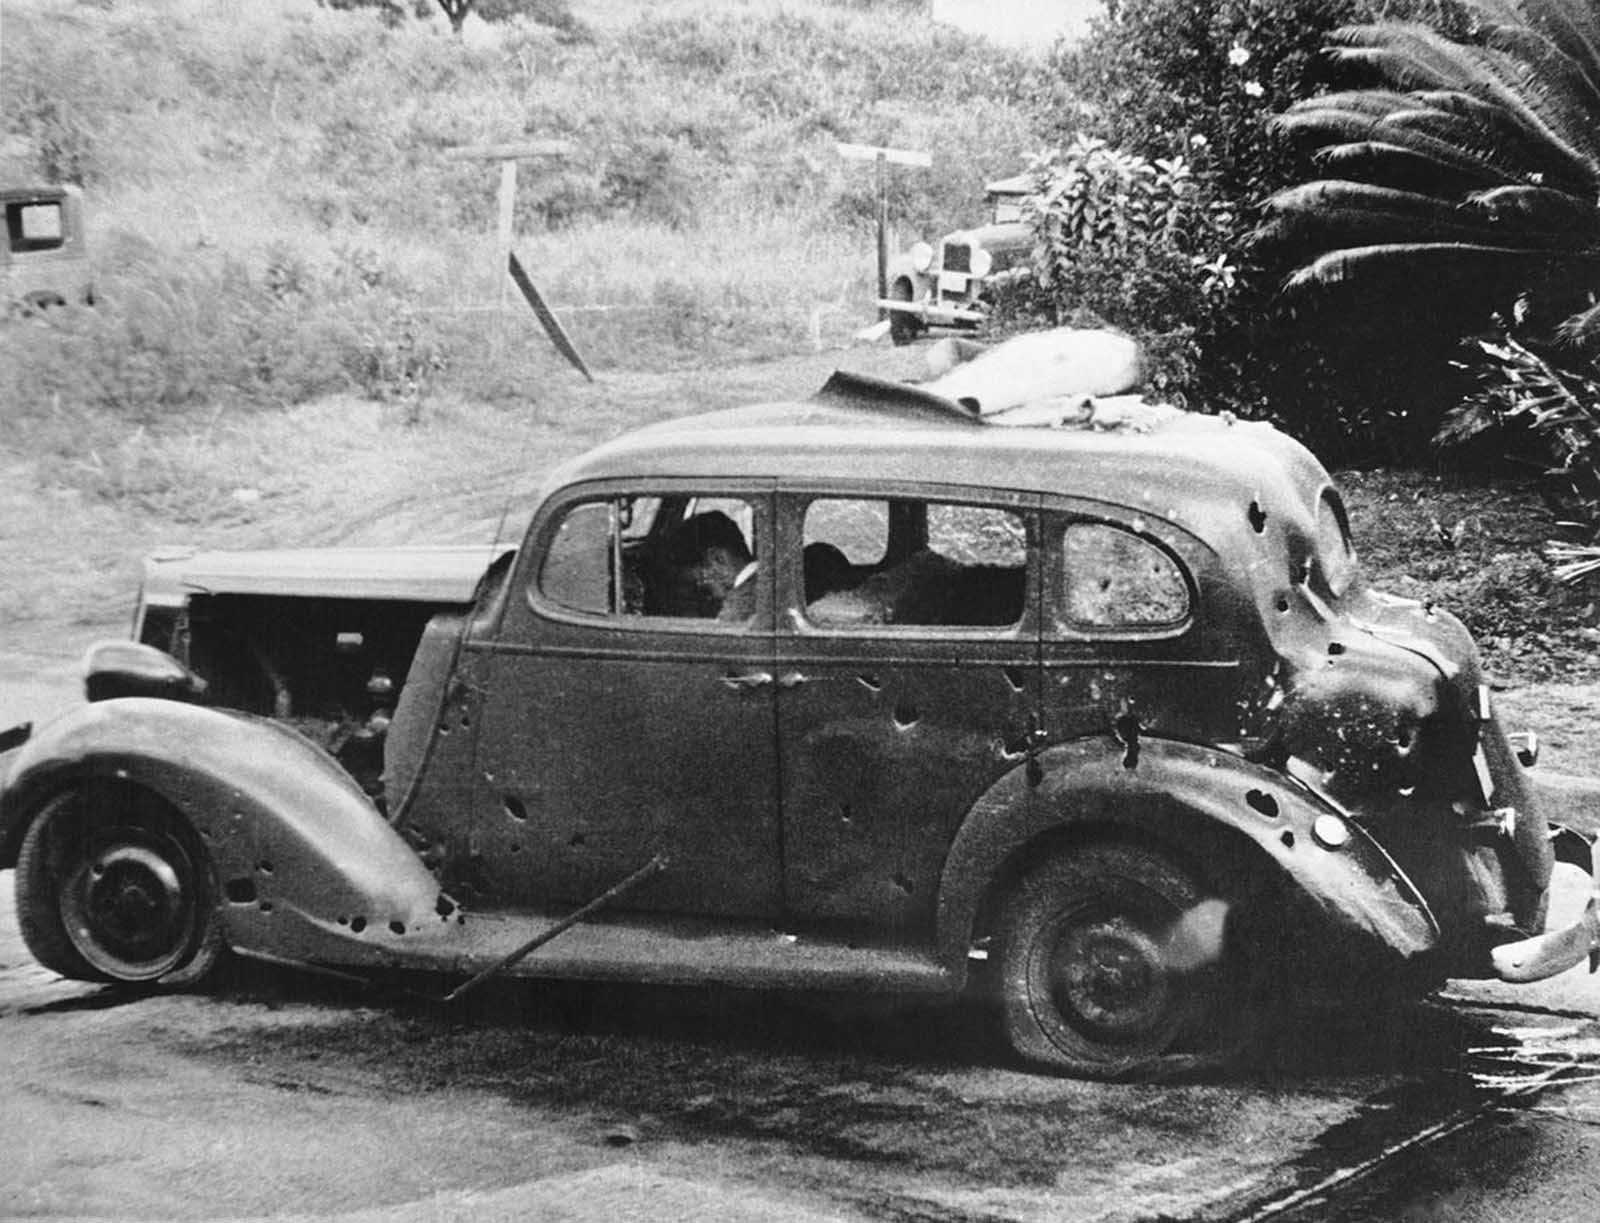 In this photo provided by the U.S. Navy, eight miles from Pearl Harbor, shrapnel from a Japanese bomb riddled this car and killed three civilians in the attack of December 7, 1941. Two of the victims can be seen in the front seat. The Navy reported there was no nearby military target.